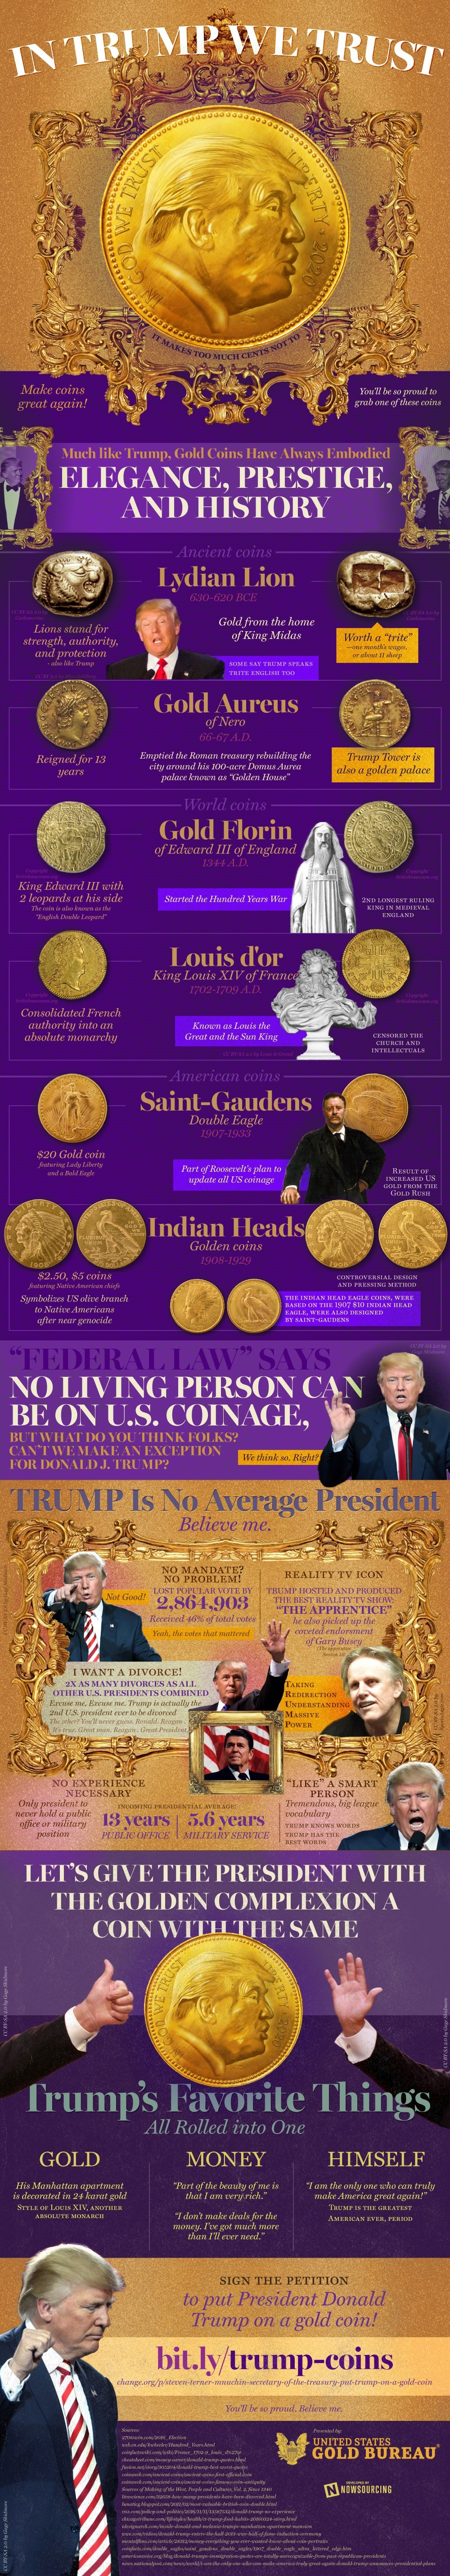 Would You Like To See Donald Trump On A Gold Coin? - Infographic